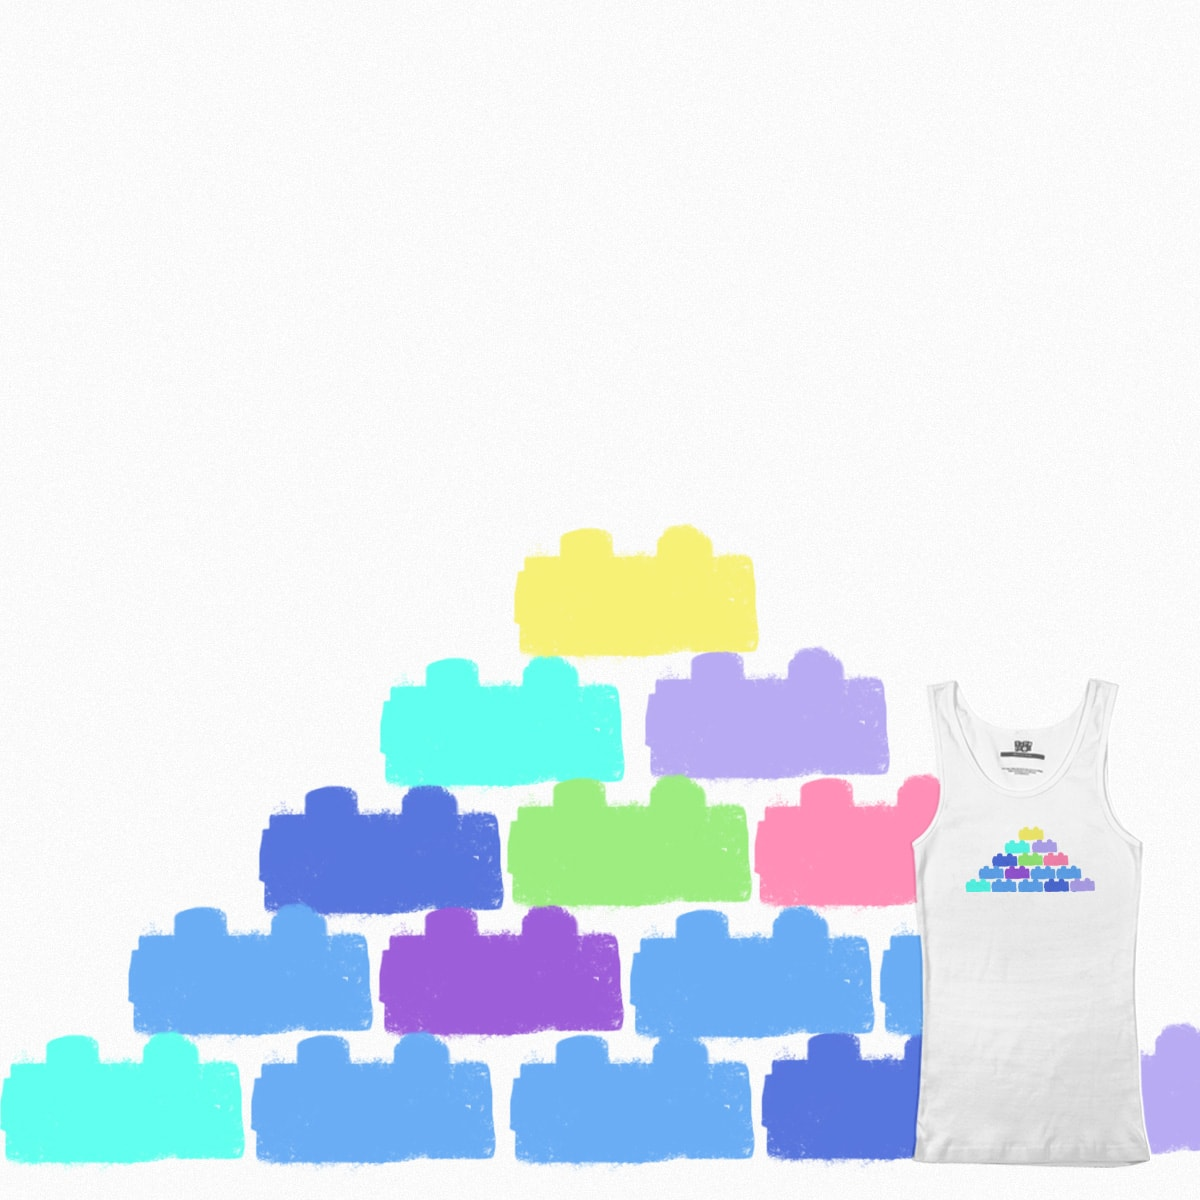 lego pyramid by YingHol_Chan on Threadless